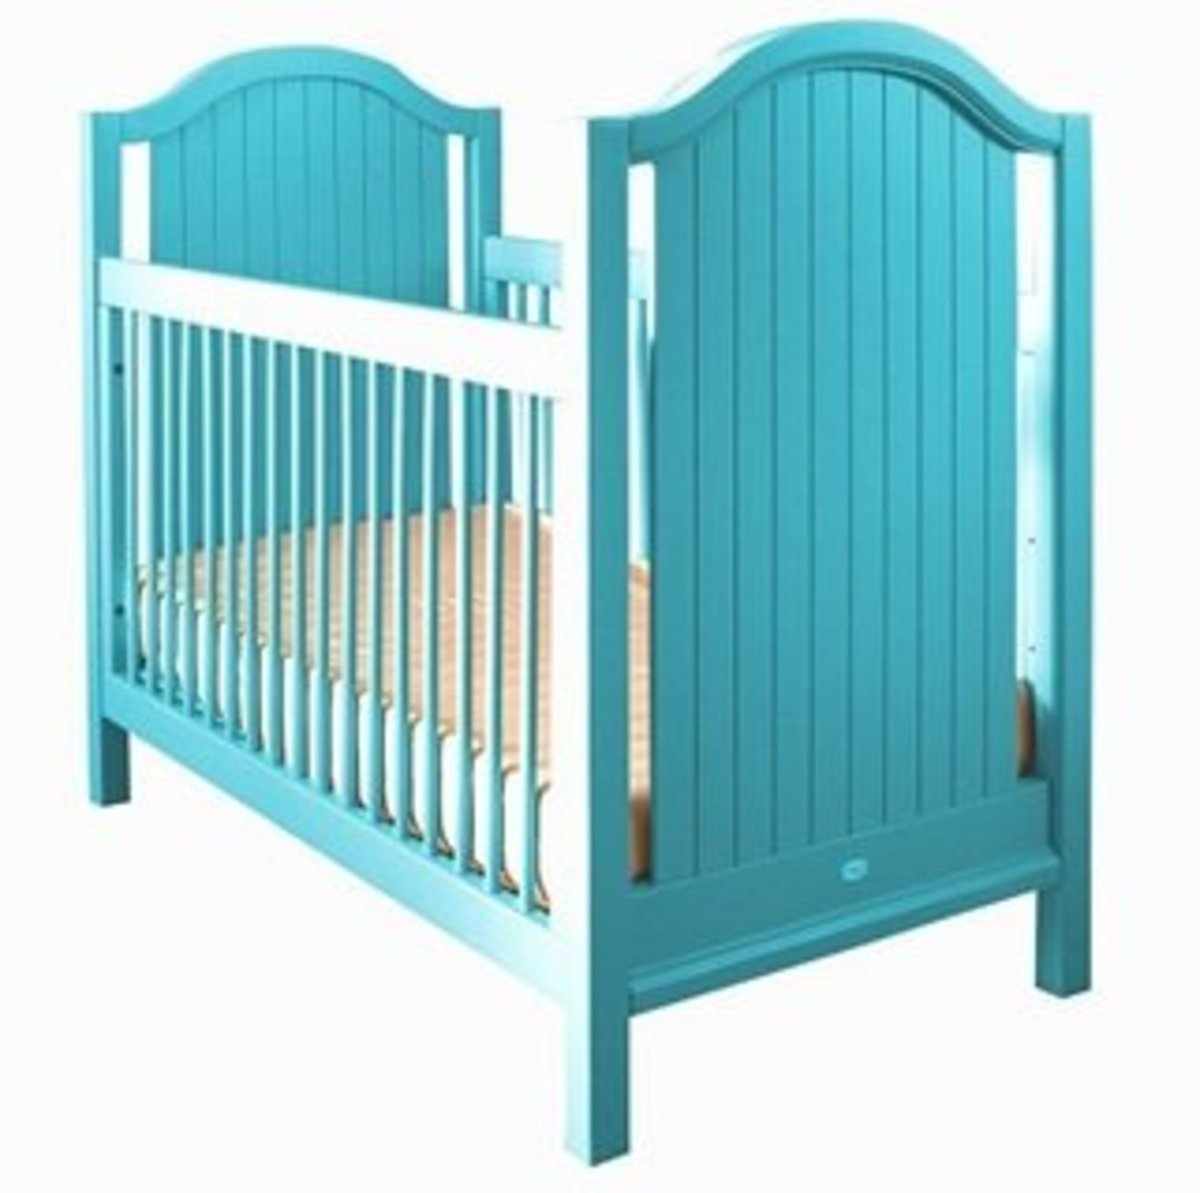 5 Baby Cribs Made in the USA